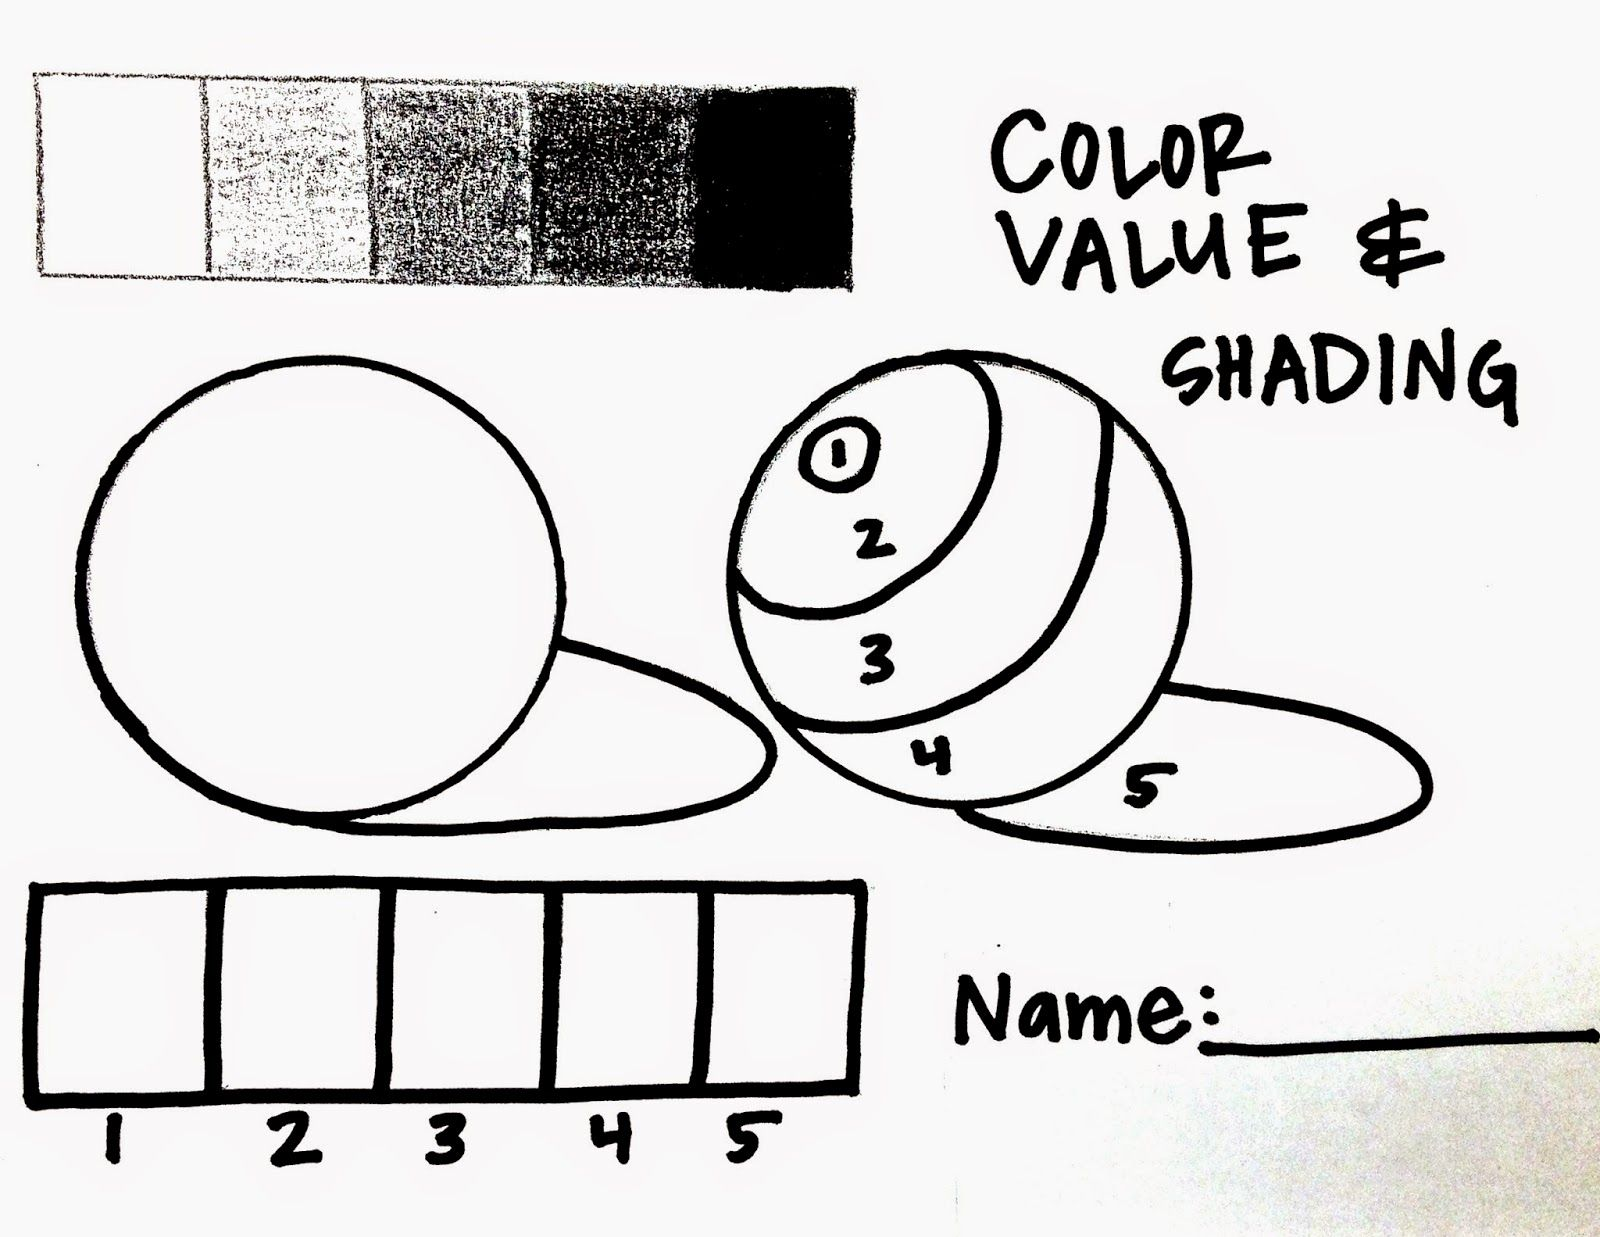 I Have Had Quite A Few People Ask Me About The Handouts I Used To Do This Color Value Lesson So